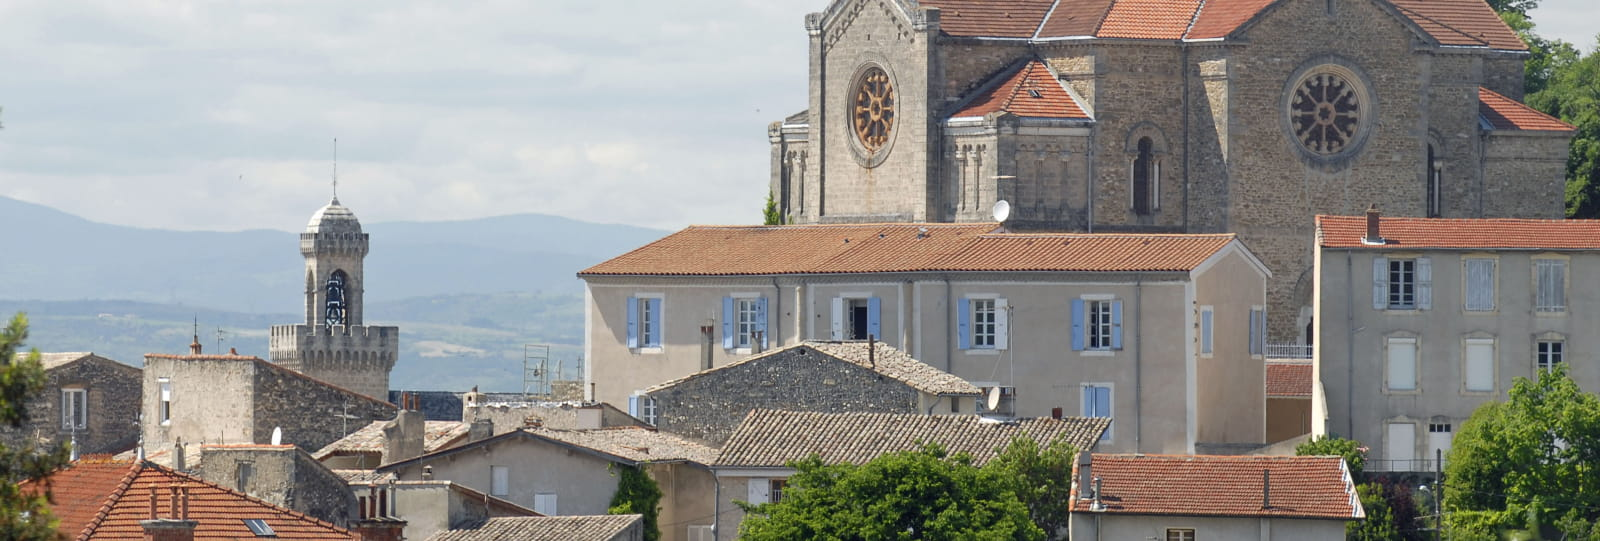 Le Clocher Saint Andéol